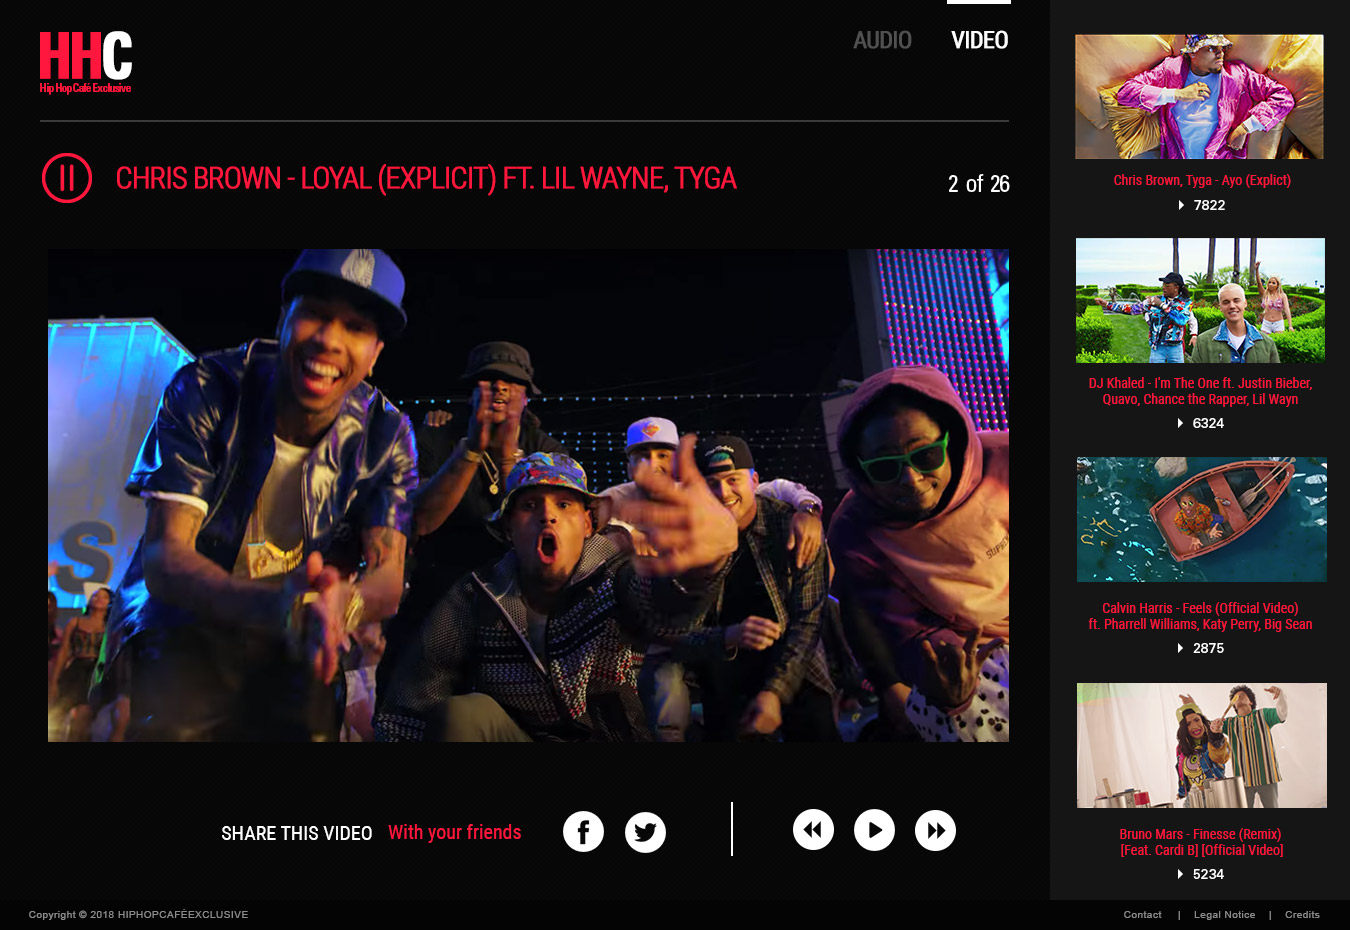 hiphopcafeexclusive HHC website capture